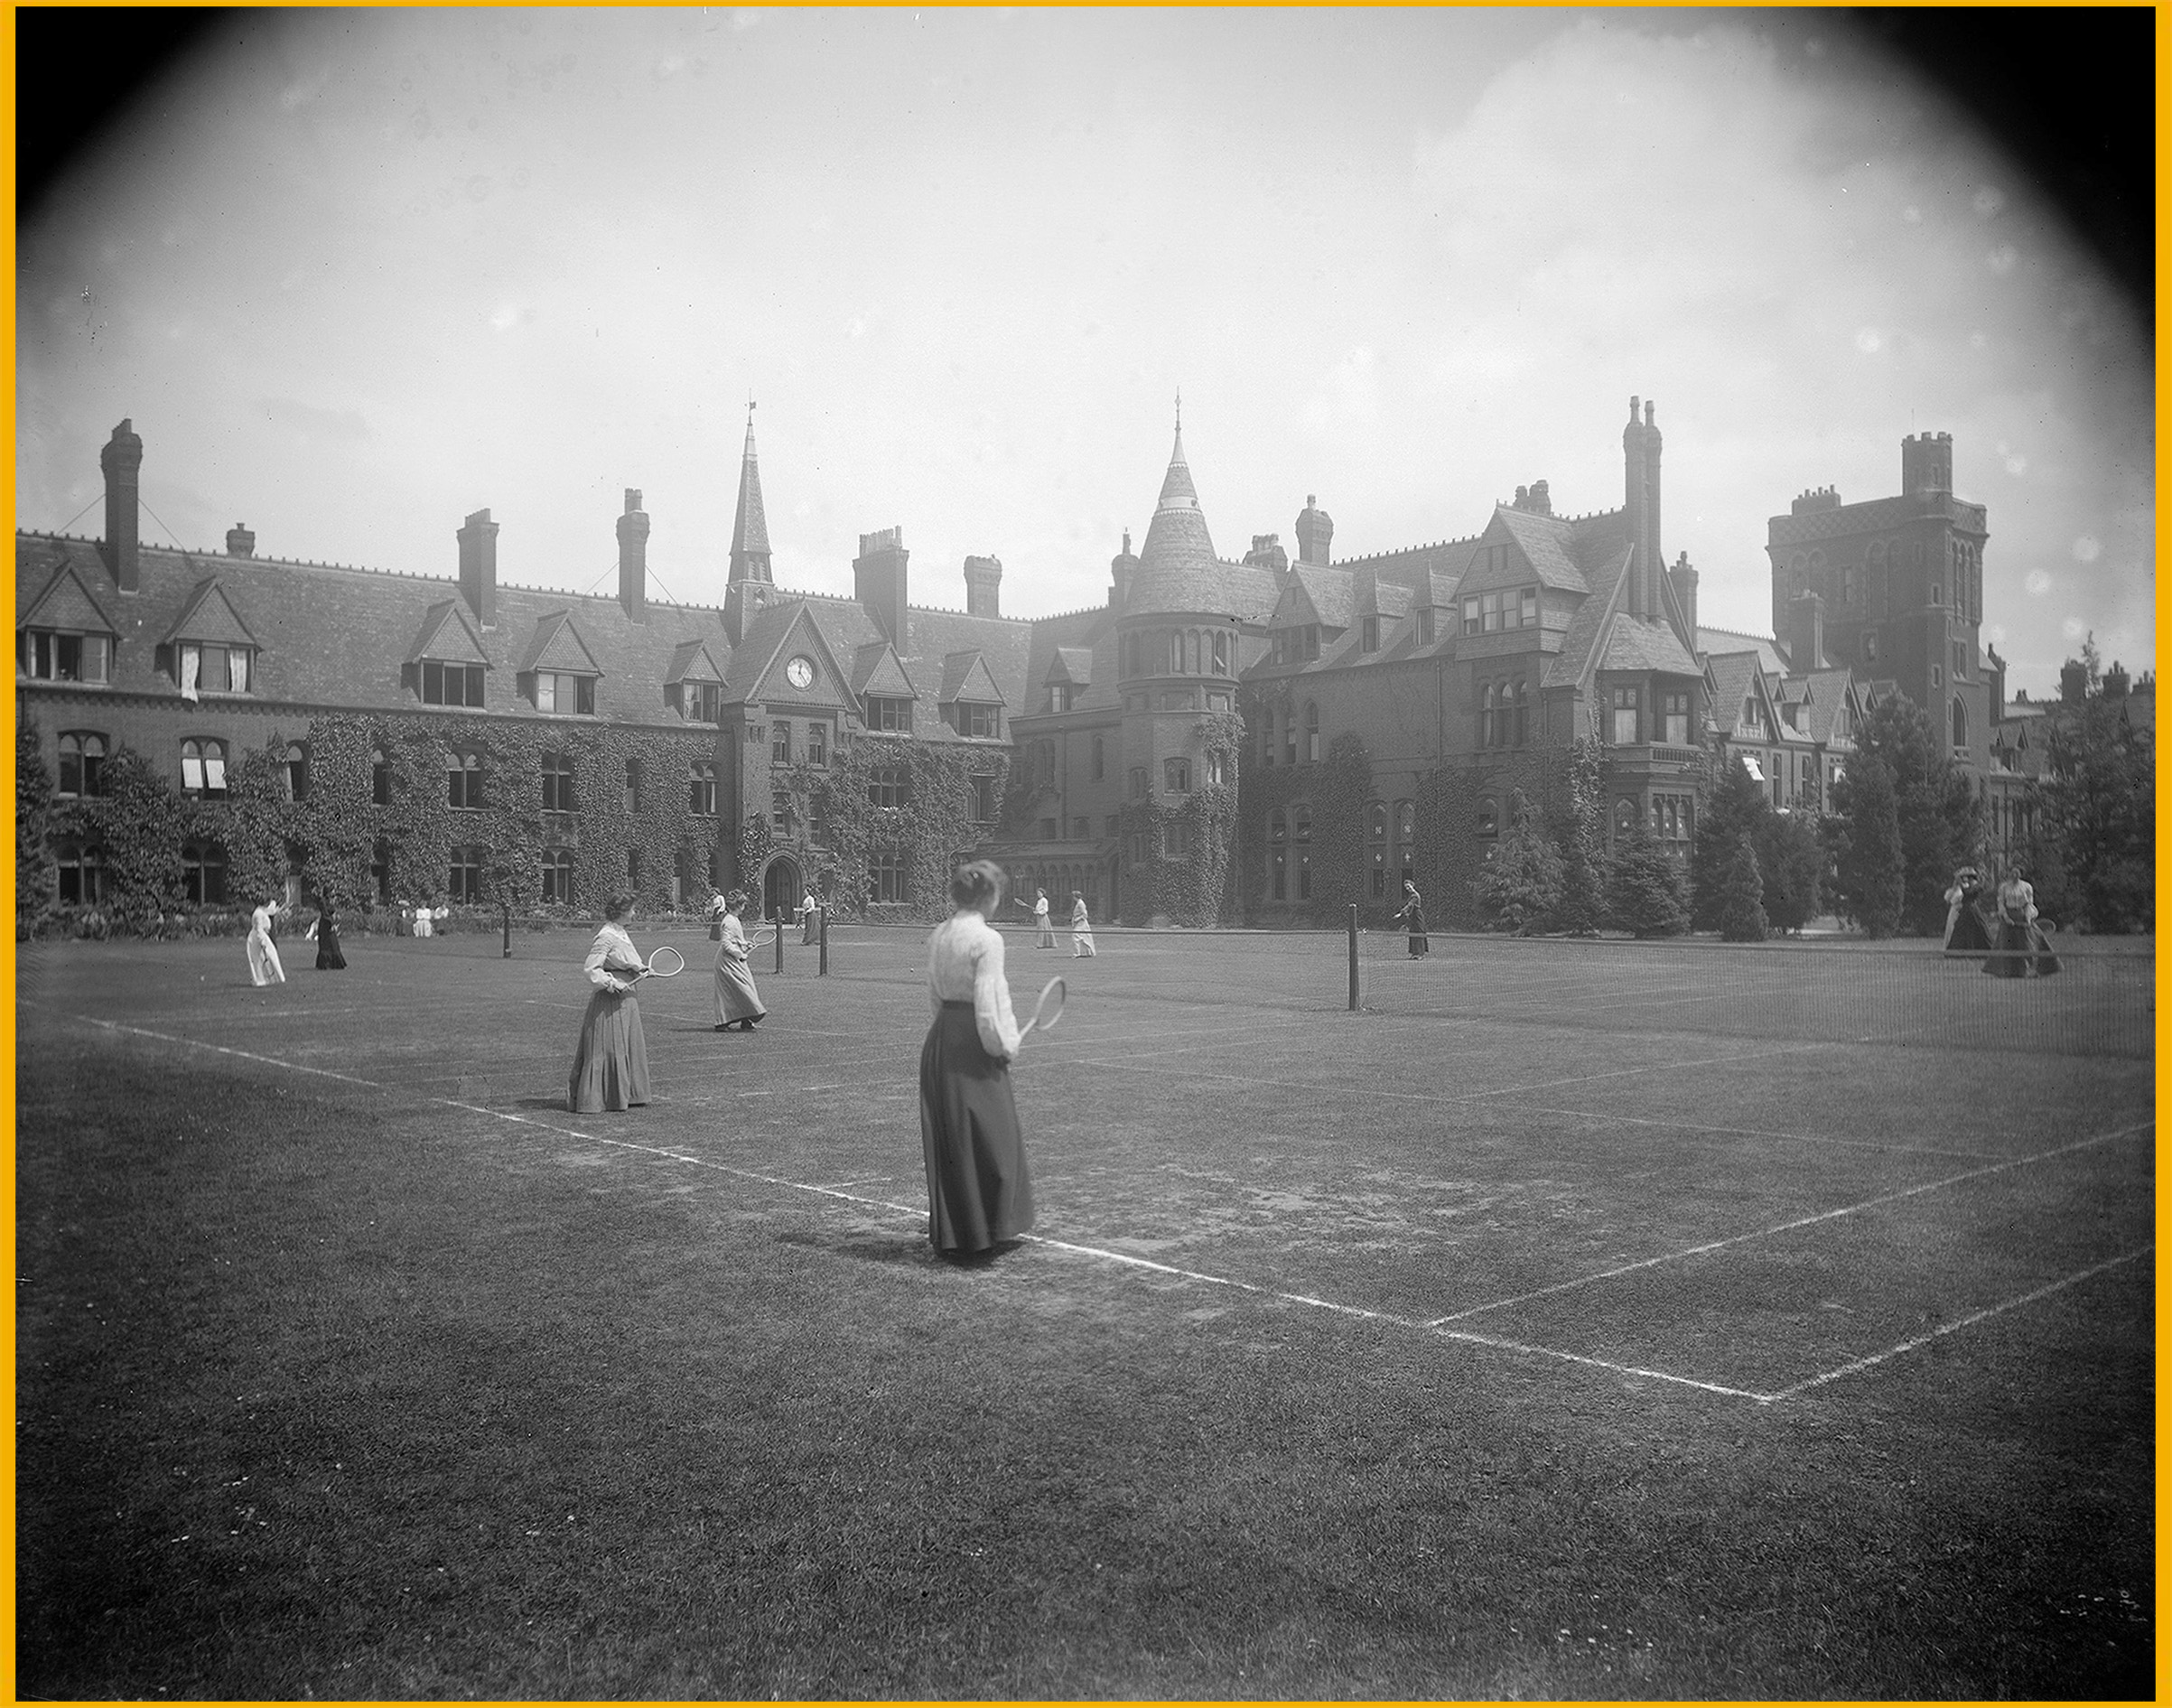 Female undergraduates playing tennis in the grounds of Girton College at Cambridge University, circa 1900.